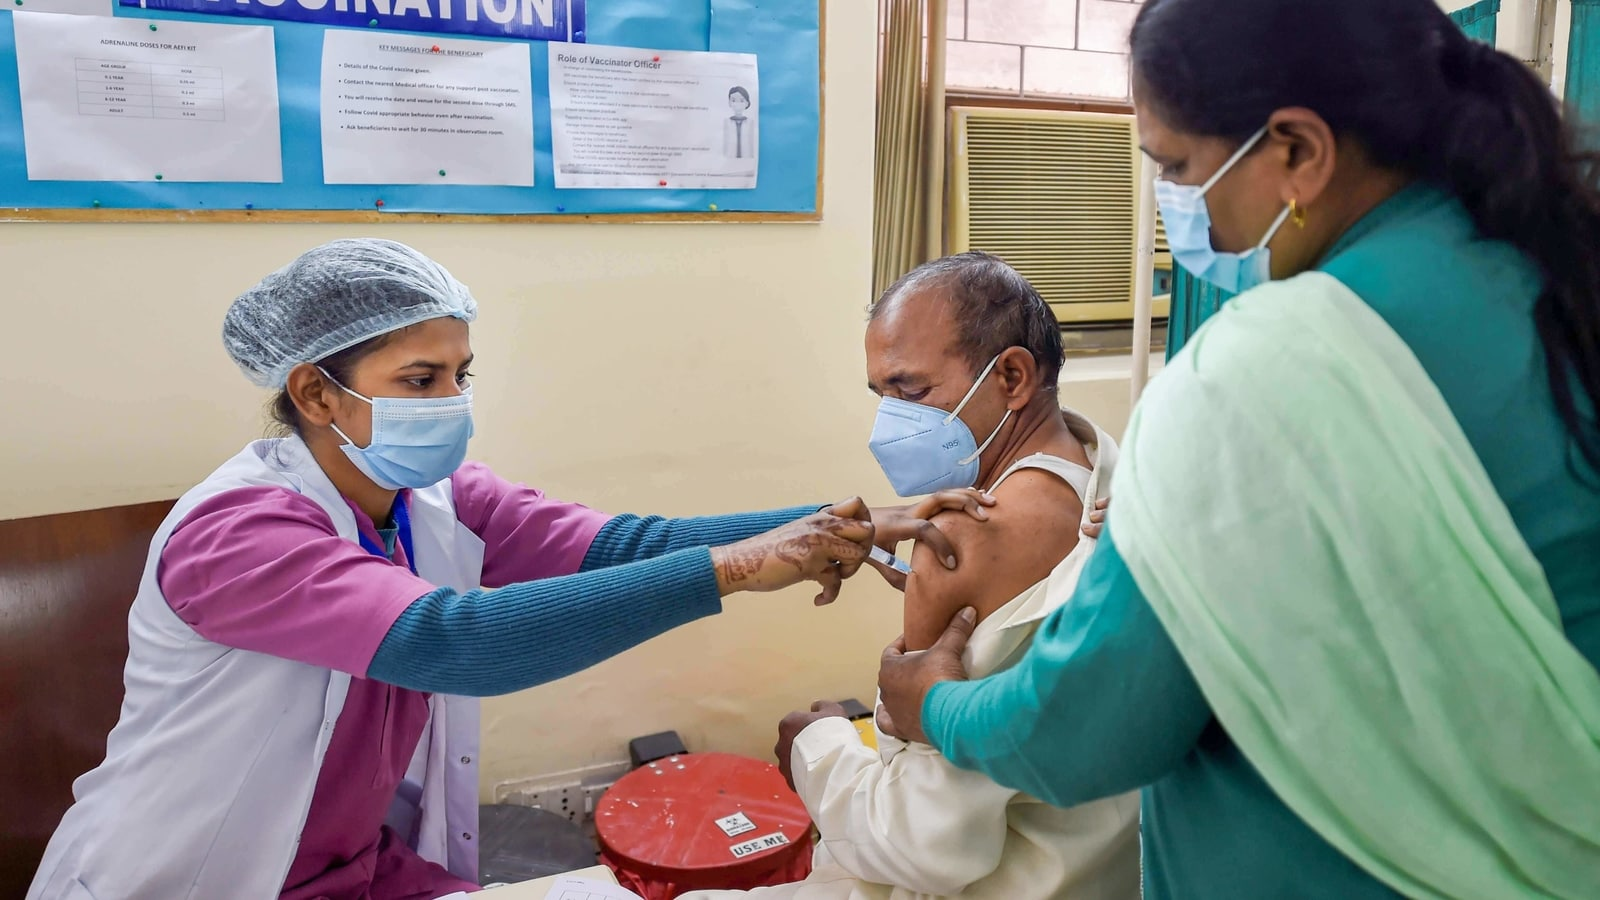 As Centre announces phase 2 of Covid-19 vaccination, Odisha releases 'operational strategy' - Hindustan Times